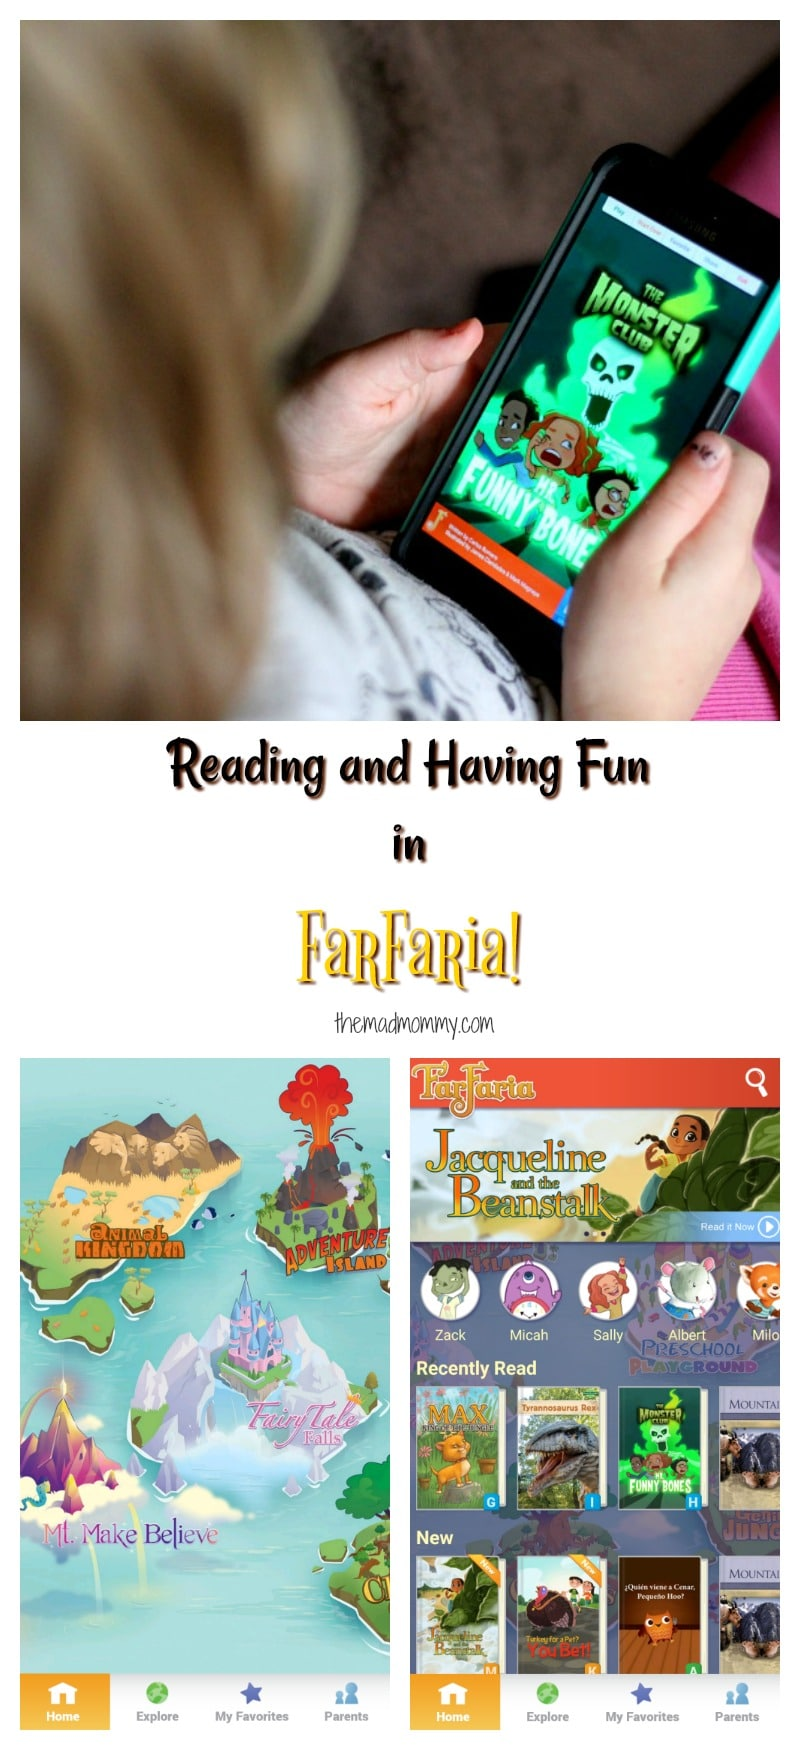 Your child can experience one book a day in FarFaria, simply by downloading the app on your apple or android devices, but there are also subscription options that open up your child's world to unlimited reading in FarFaria! #Sponsored #FarFaria